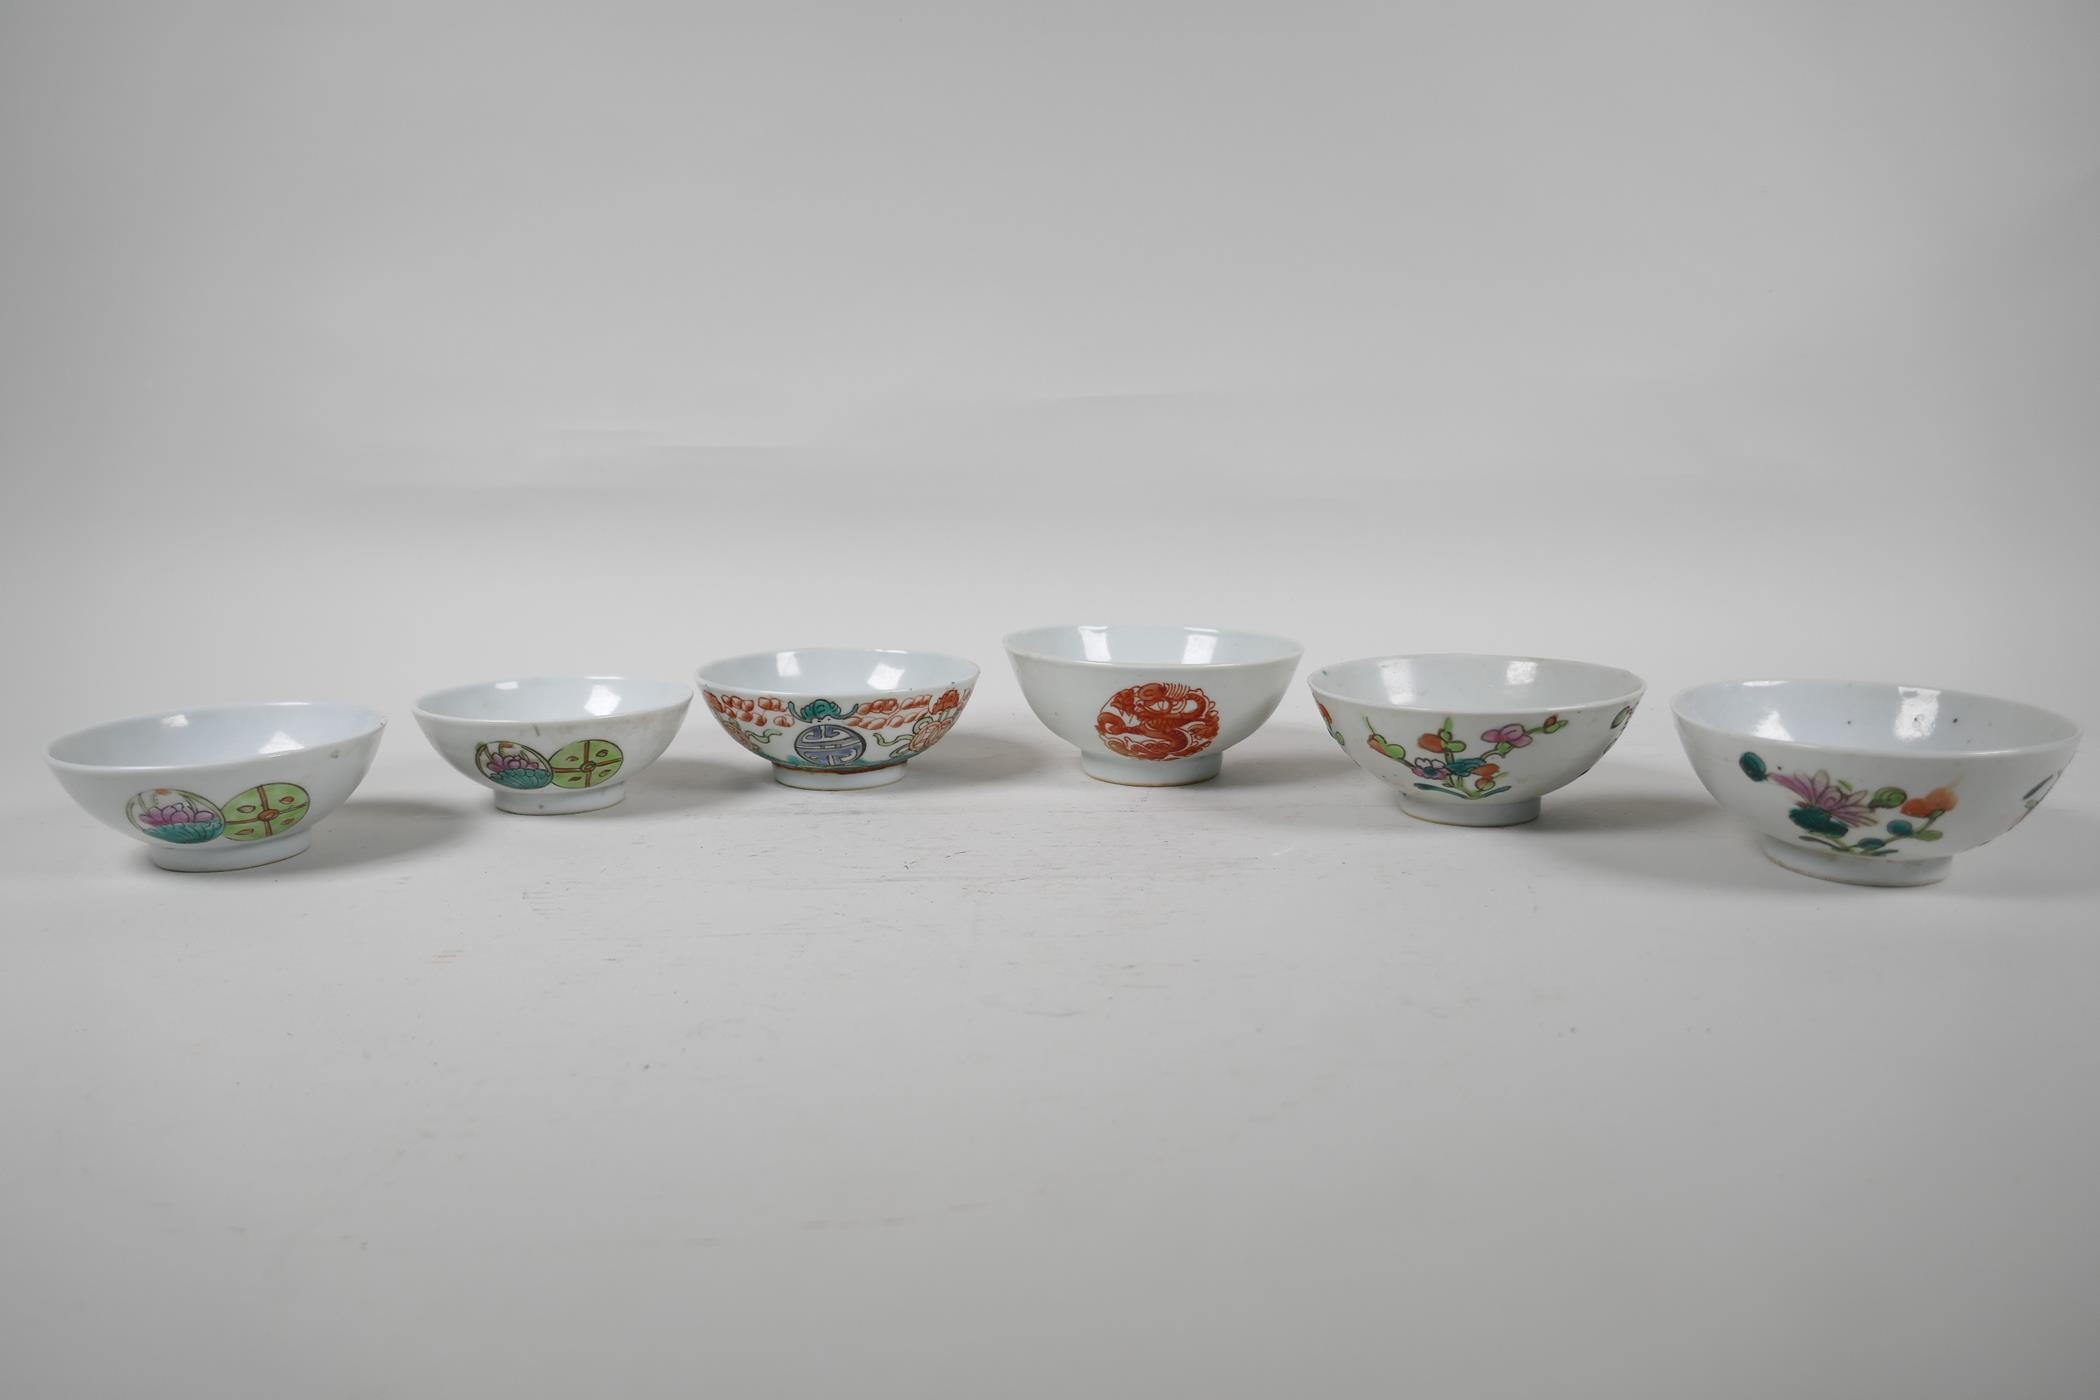 Six assorted Chinese republic period porcelain tea bowls with famille rose and vert enamel